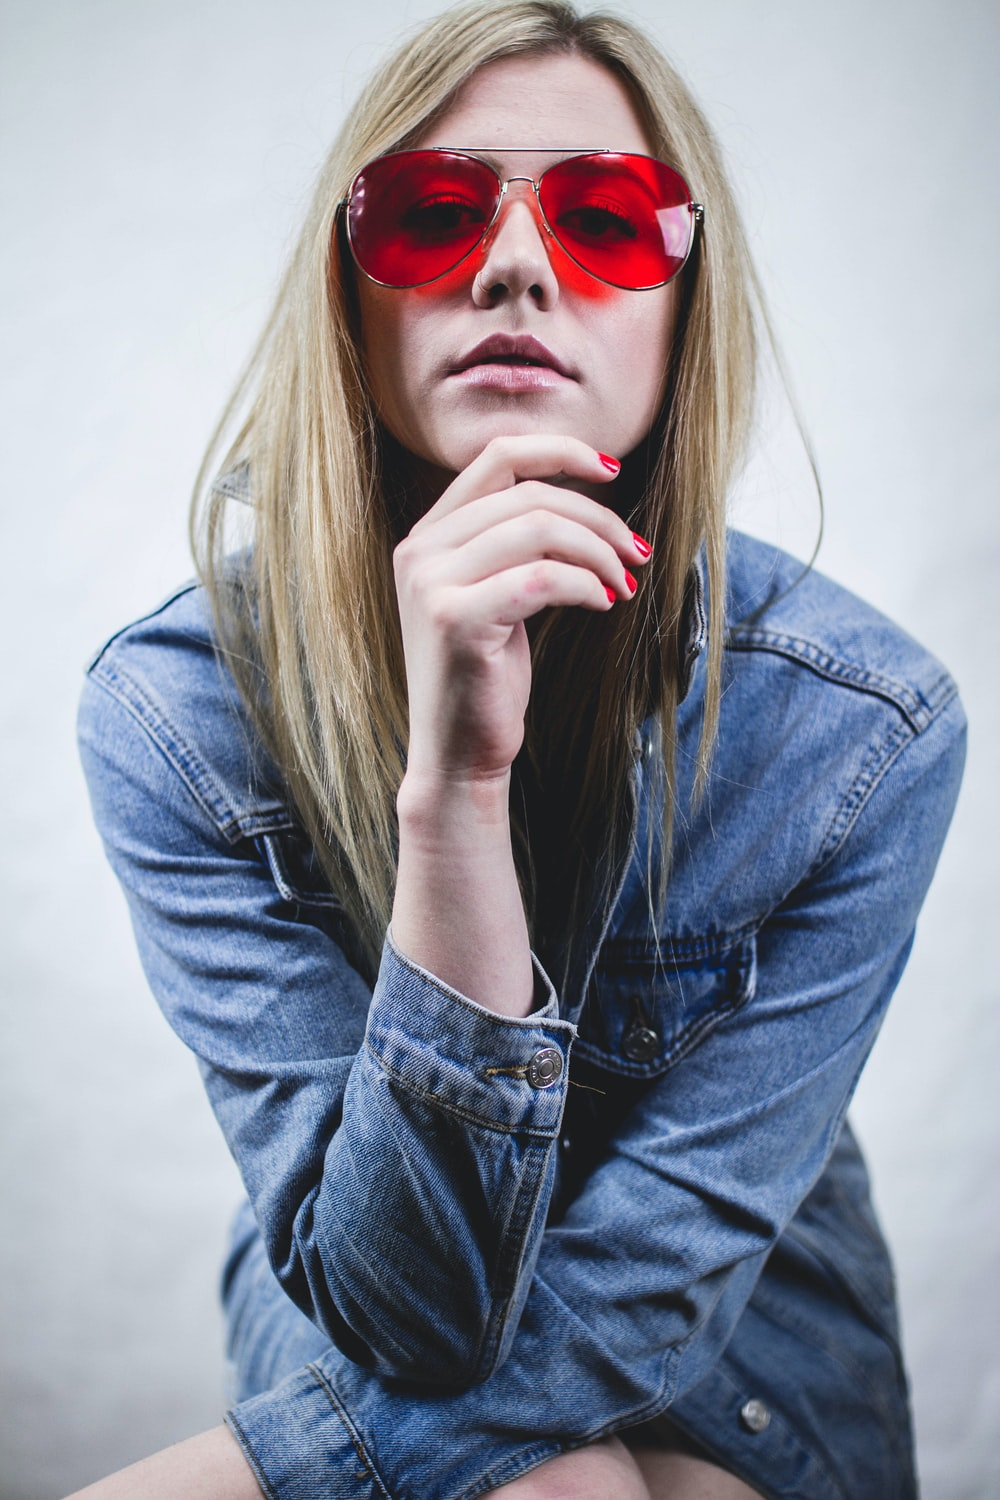 woman in blue denim jacket wearing red sunglasses and red manicure with hands on chin